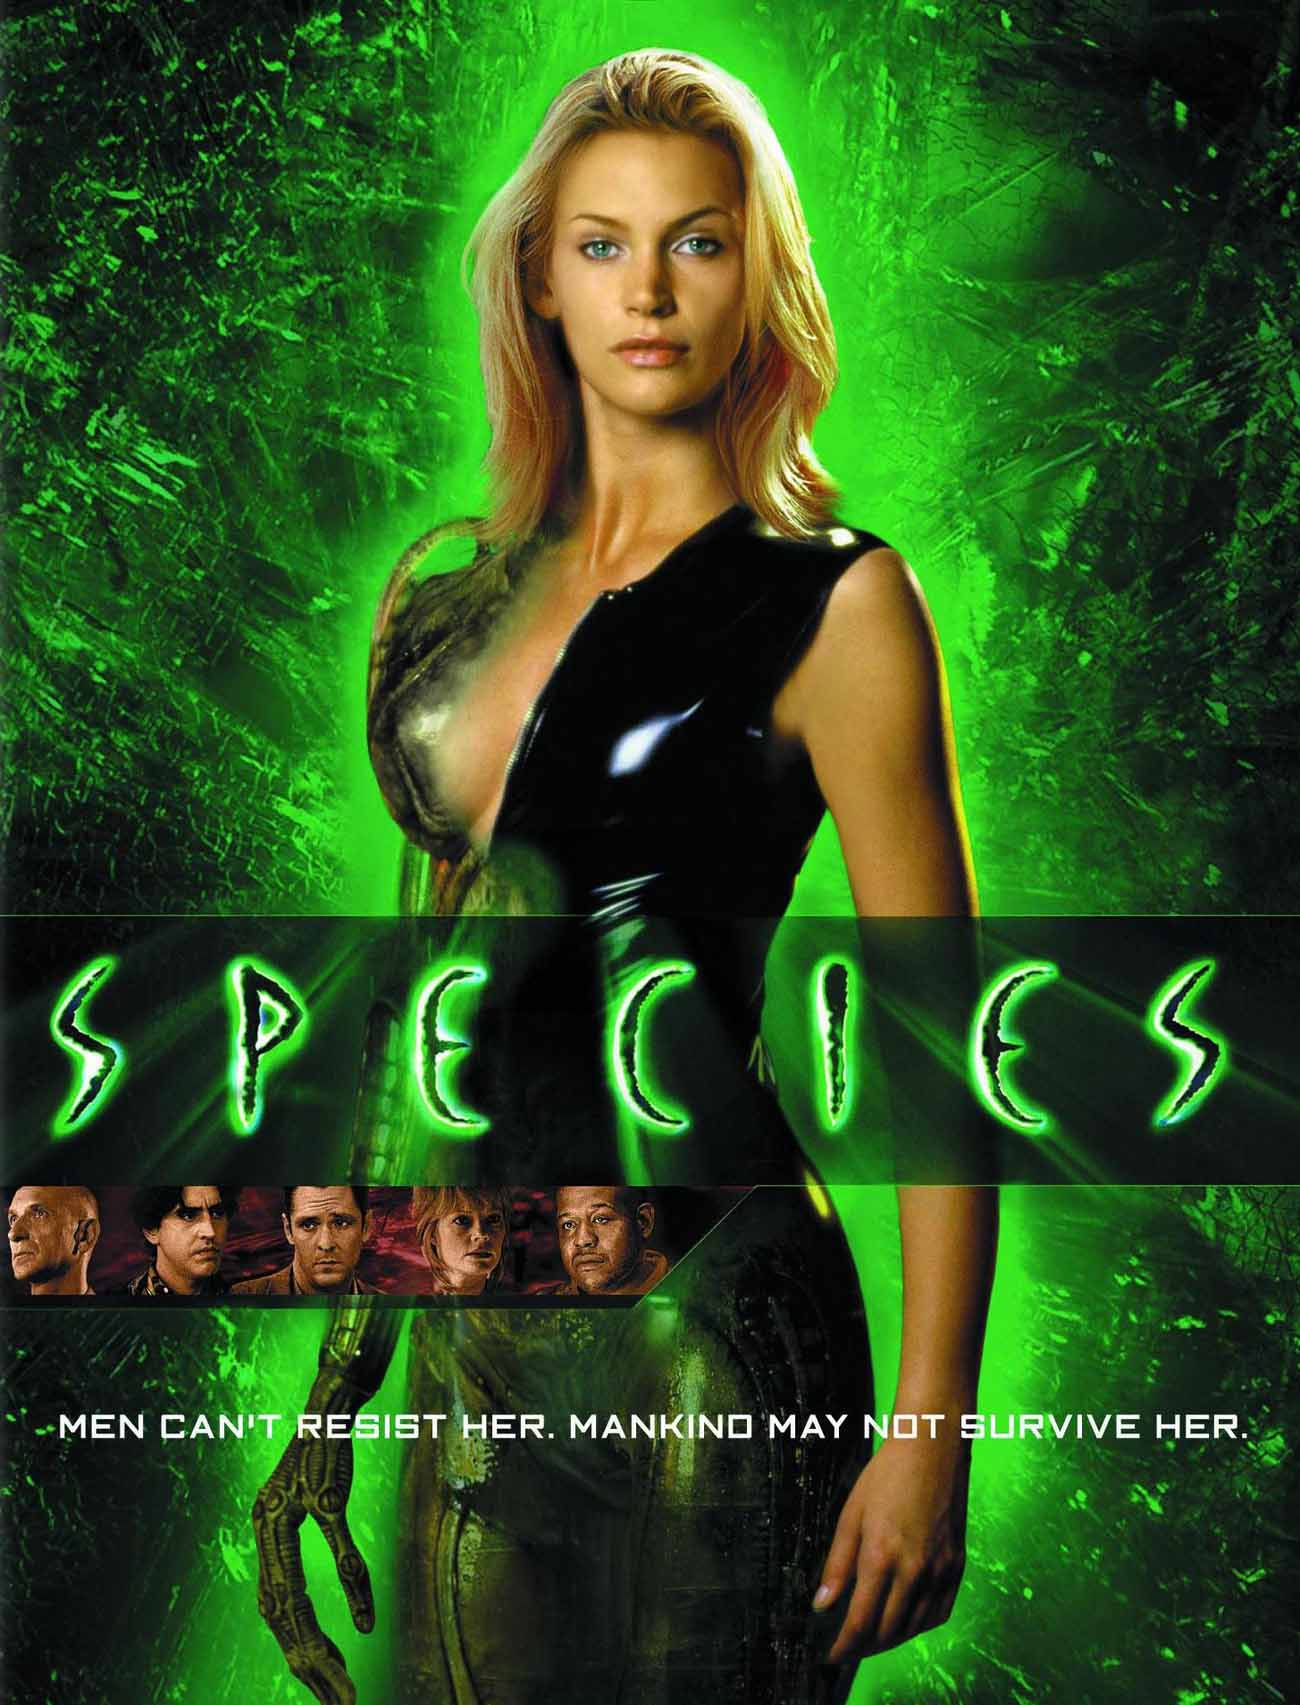 Species (1995) - Movie